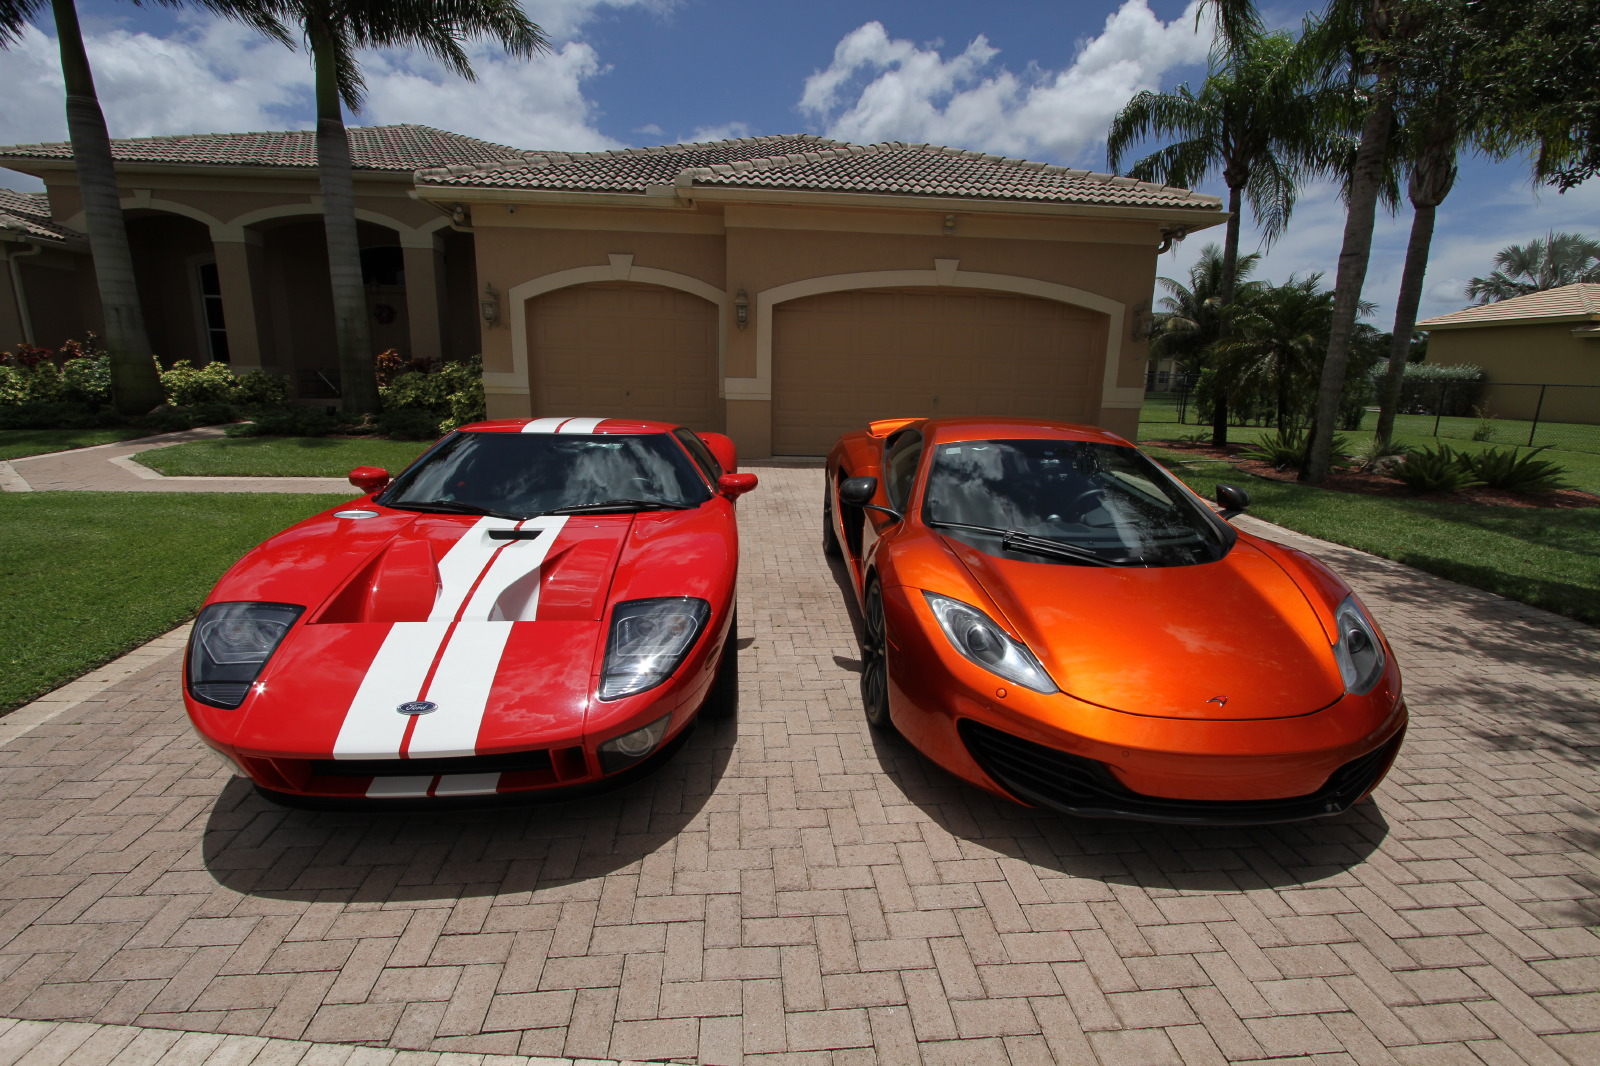 mclaren-mp4-12c-volcano-orange-vs-ford-gt-red-white-003